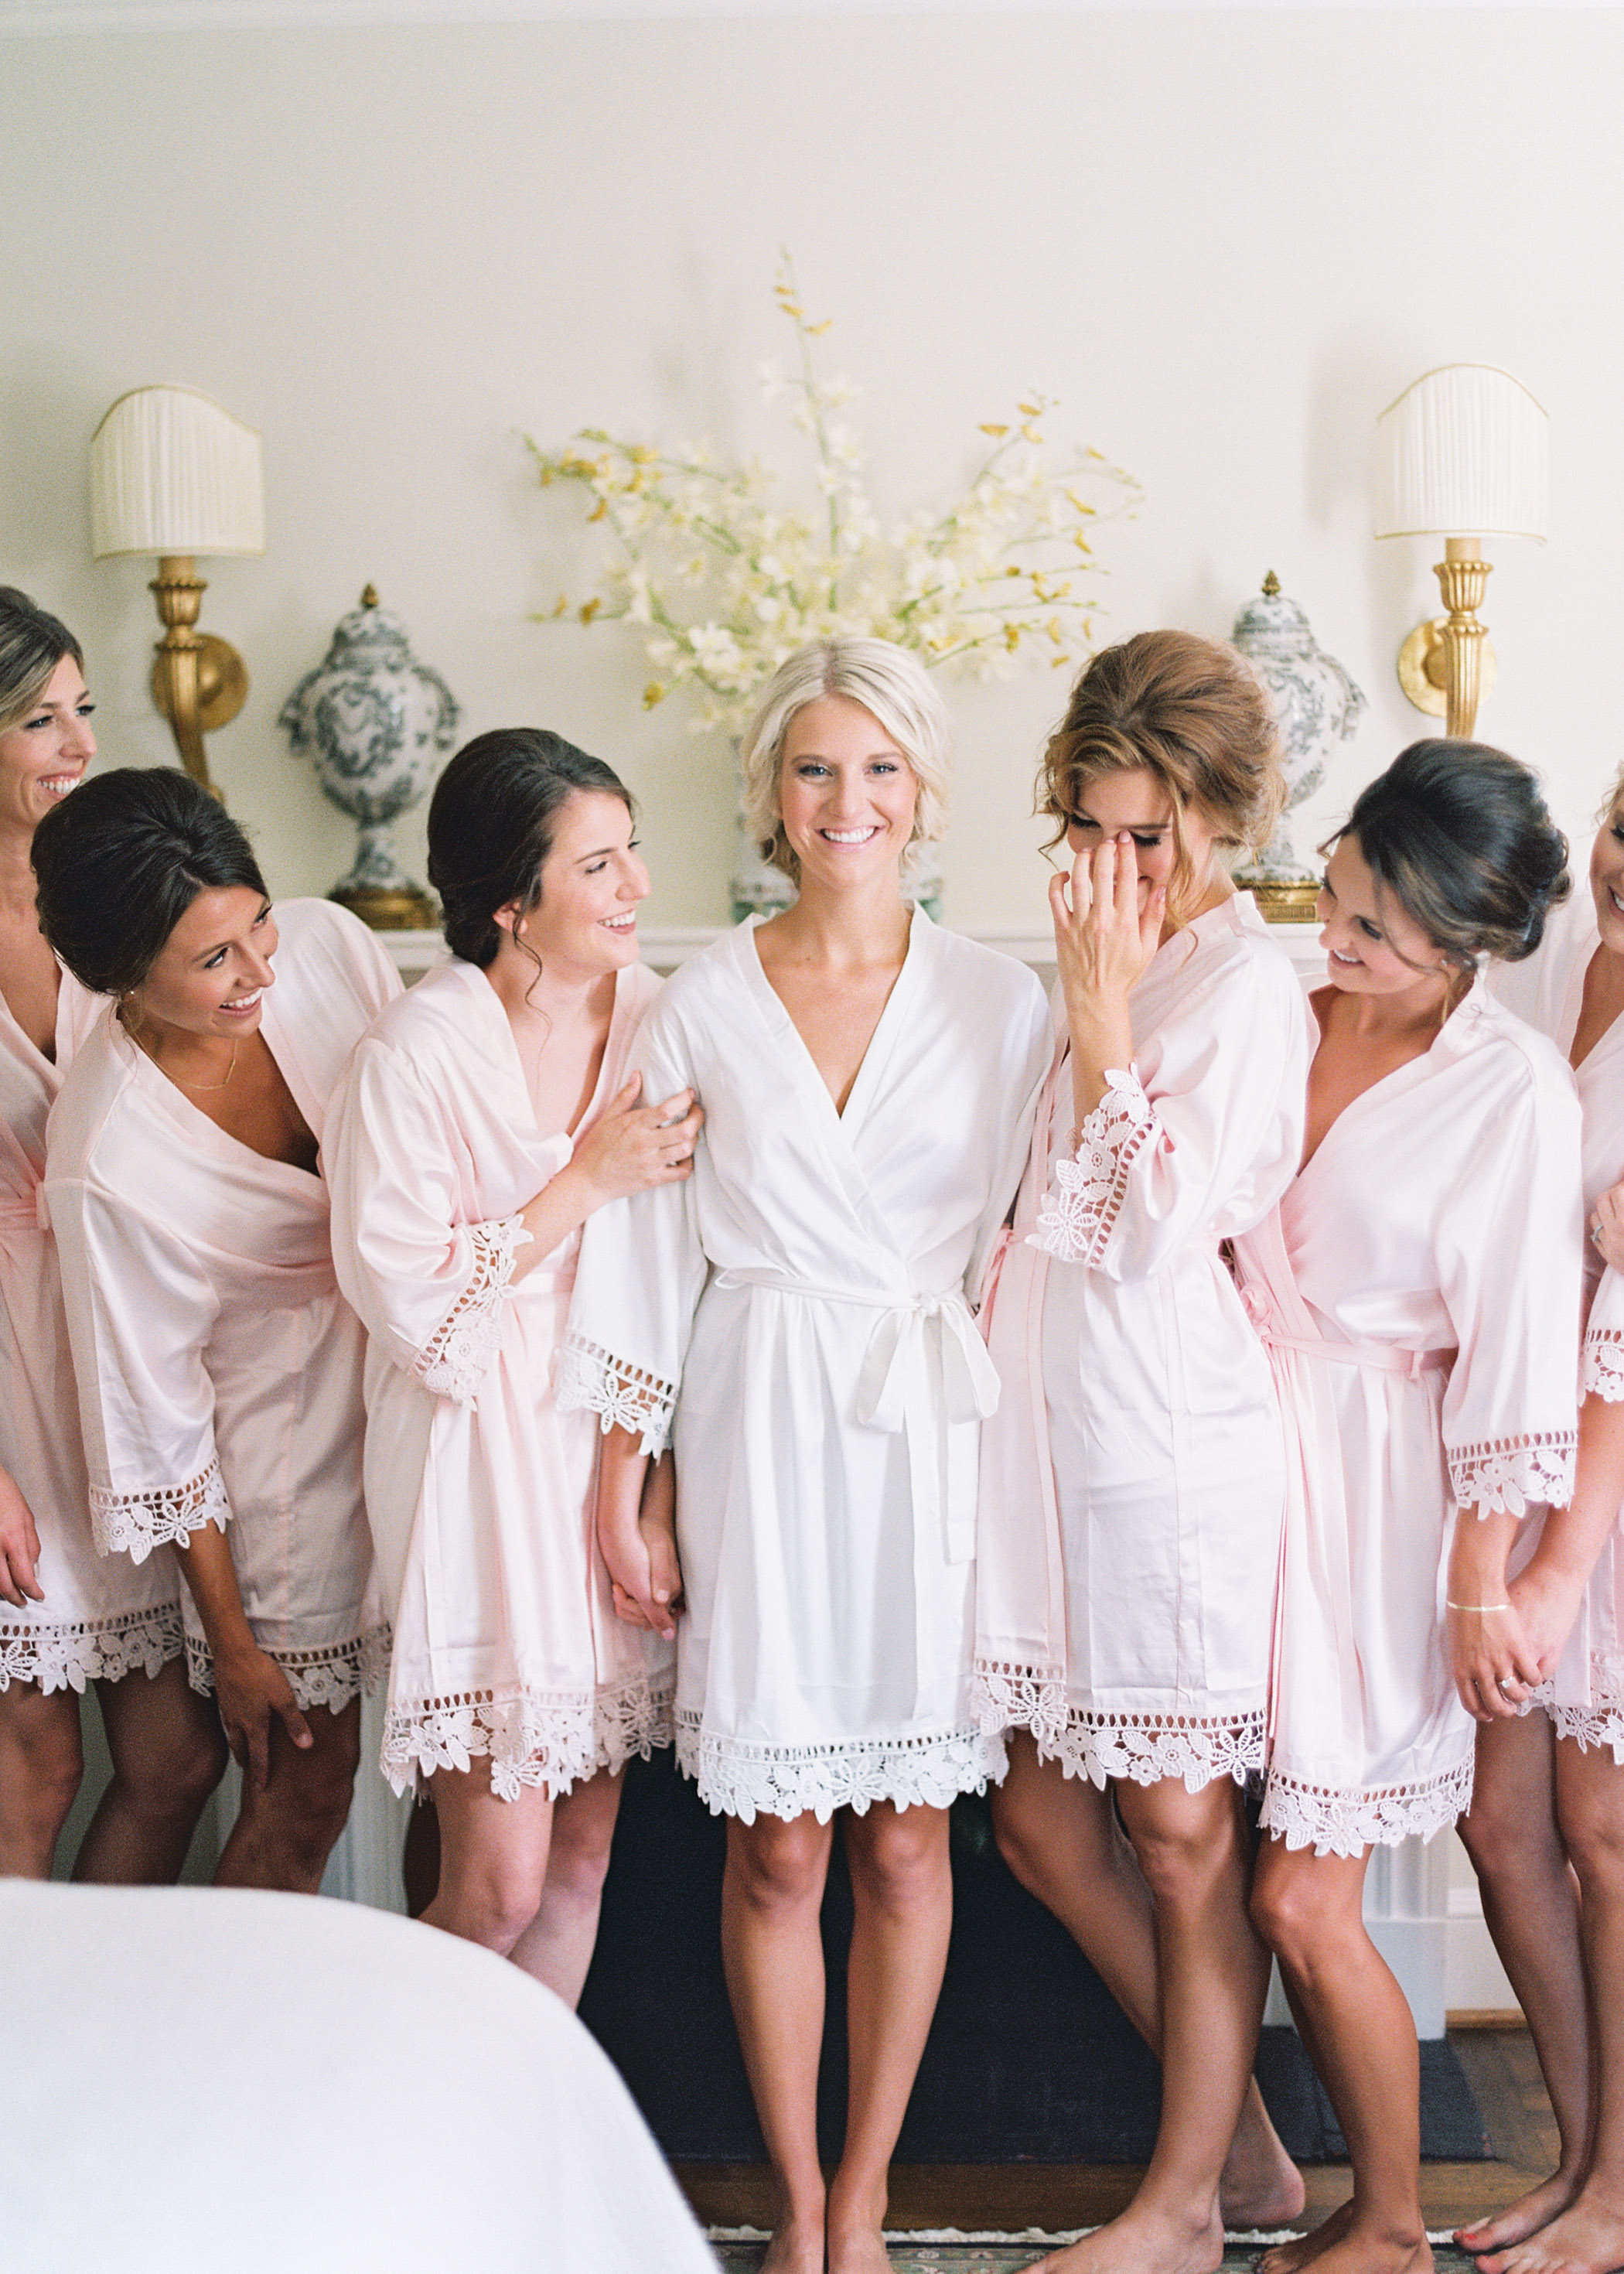 A Bride's Guide to Creating a Hair and Makeup Timeline for the Wedding Morning